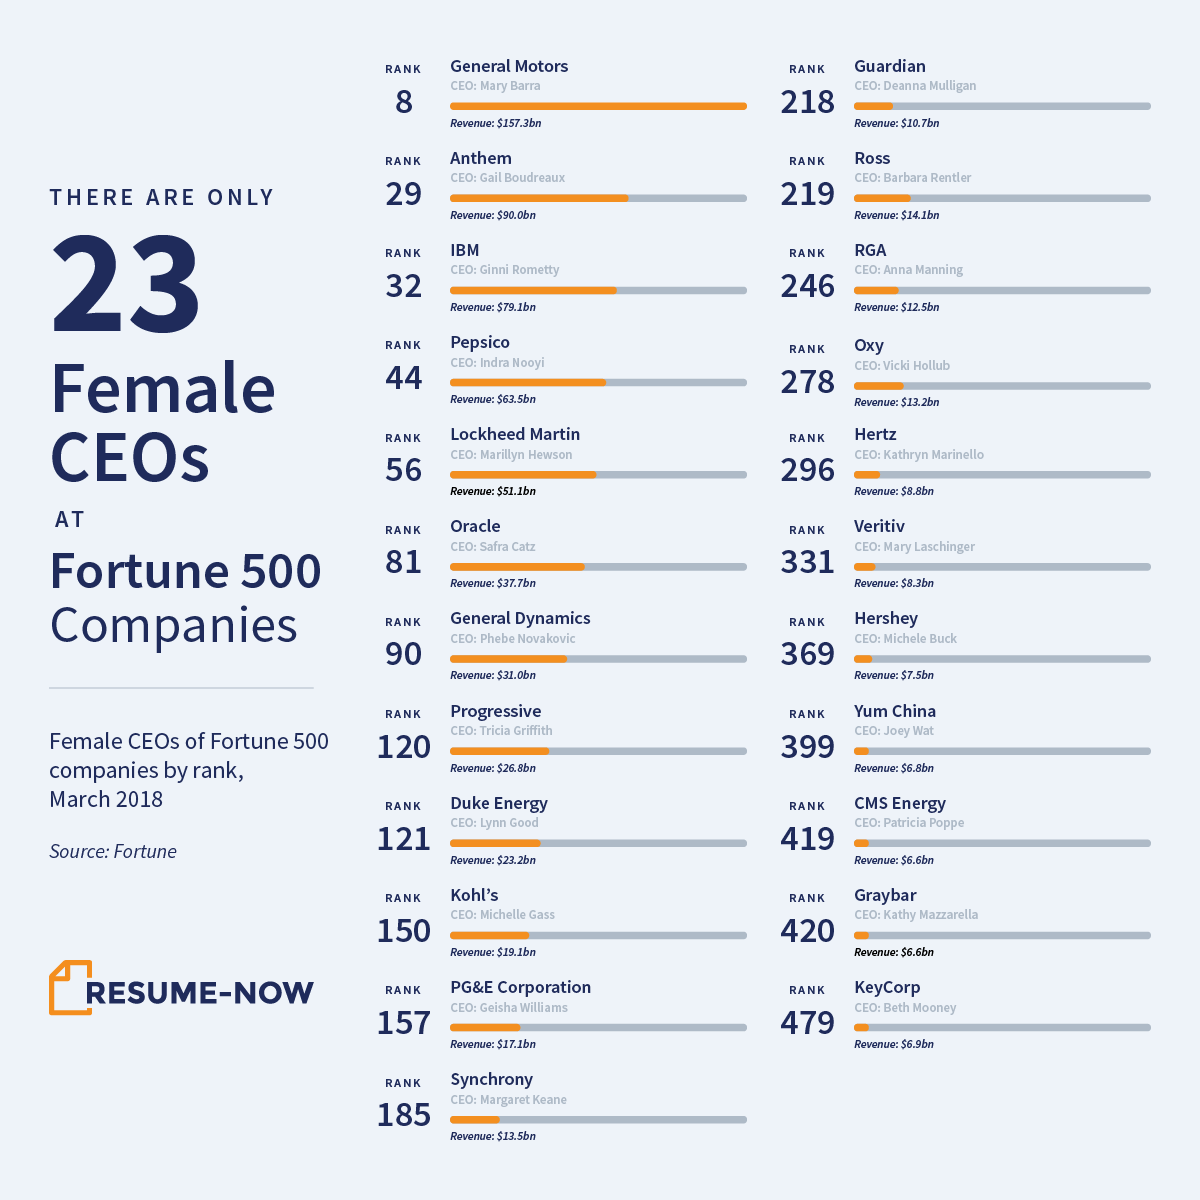 Not even 5 of all Fortune 500 companies have female CEOs